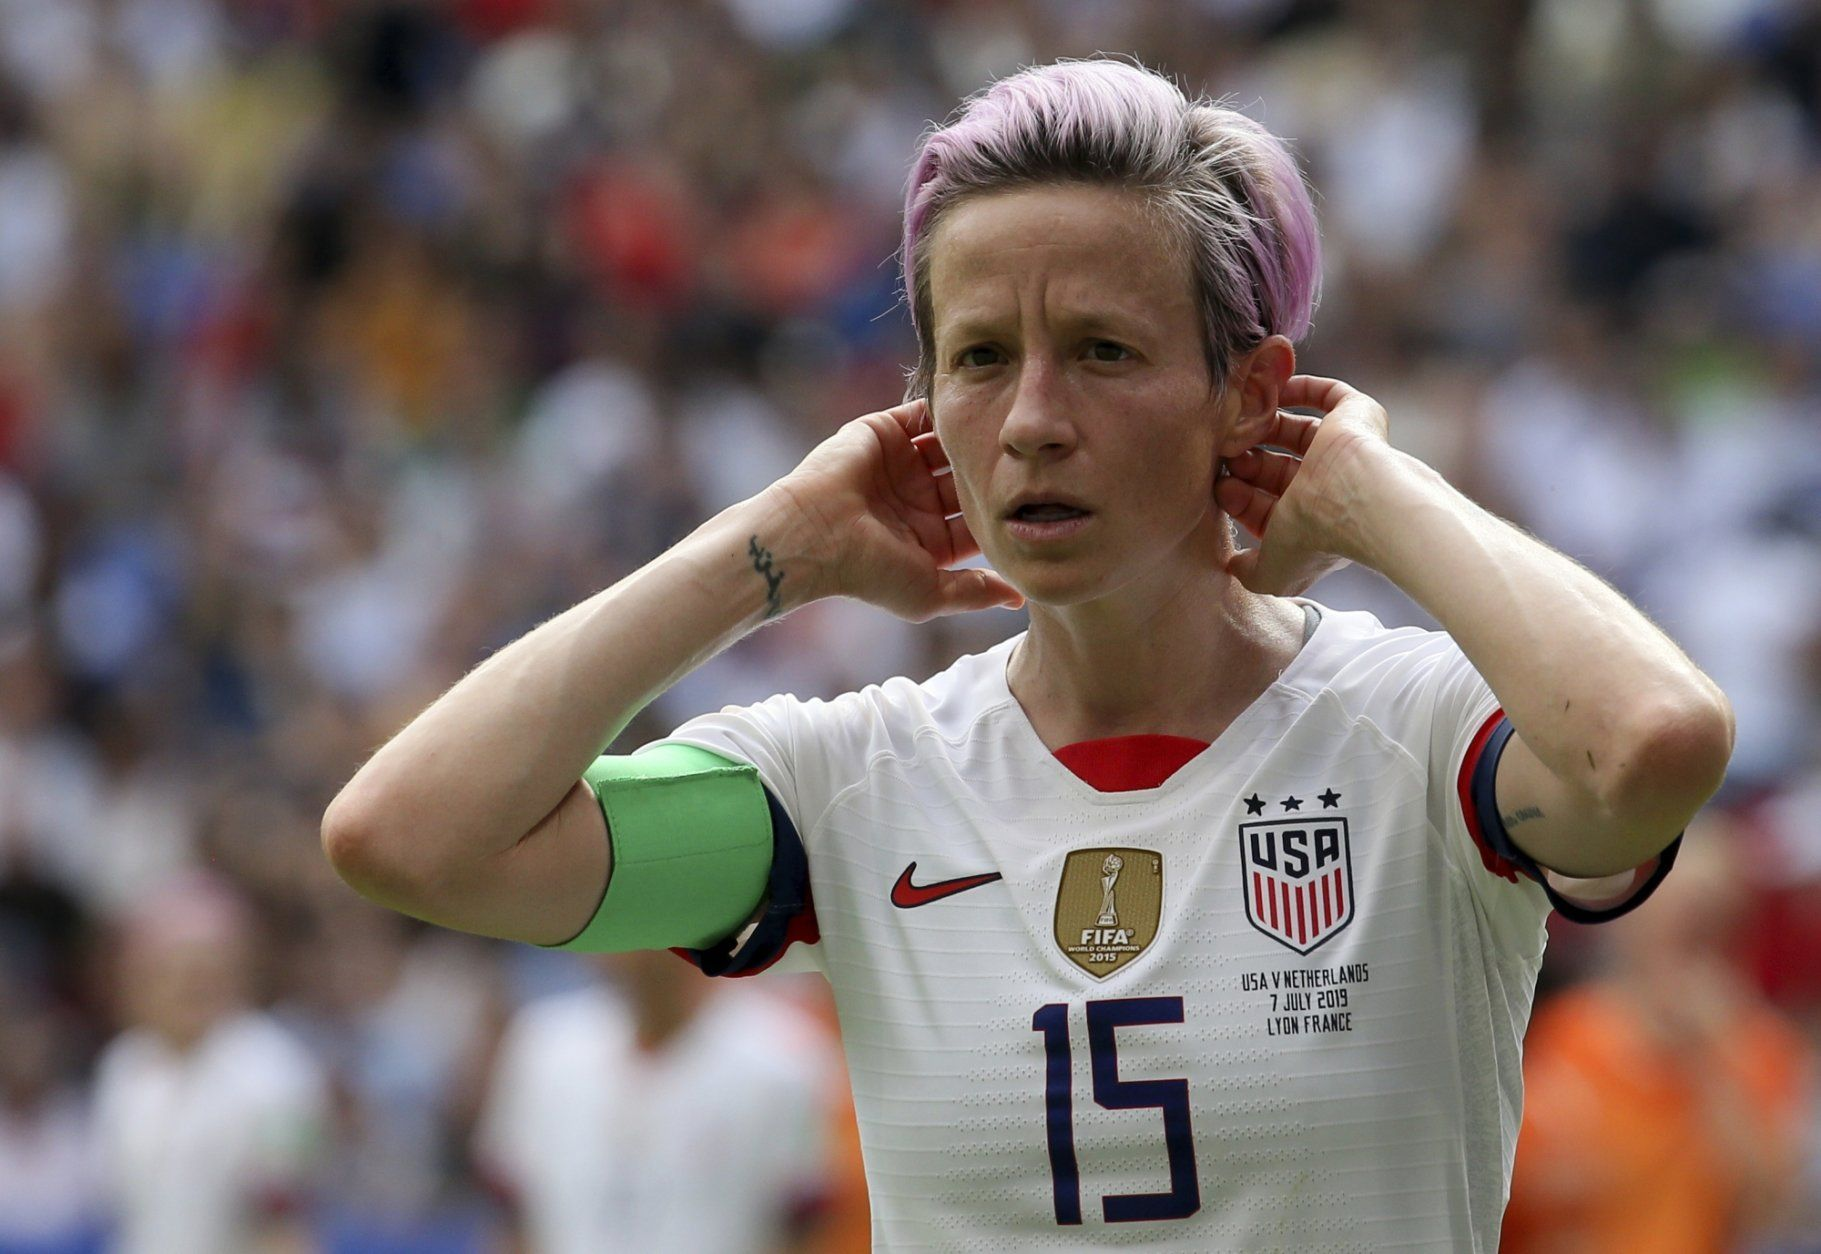 United States' Megan Rapinoe reacts during the Women's World Cup final soccer match between US and The Netherlands at the Stade de Lyon in Decines, outside Lyon, France, Sunday, July 7, 2019. (AP Photo/David Vincent)